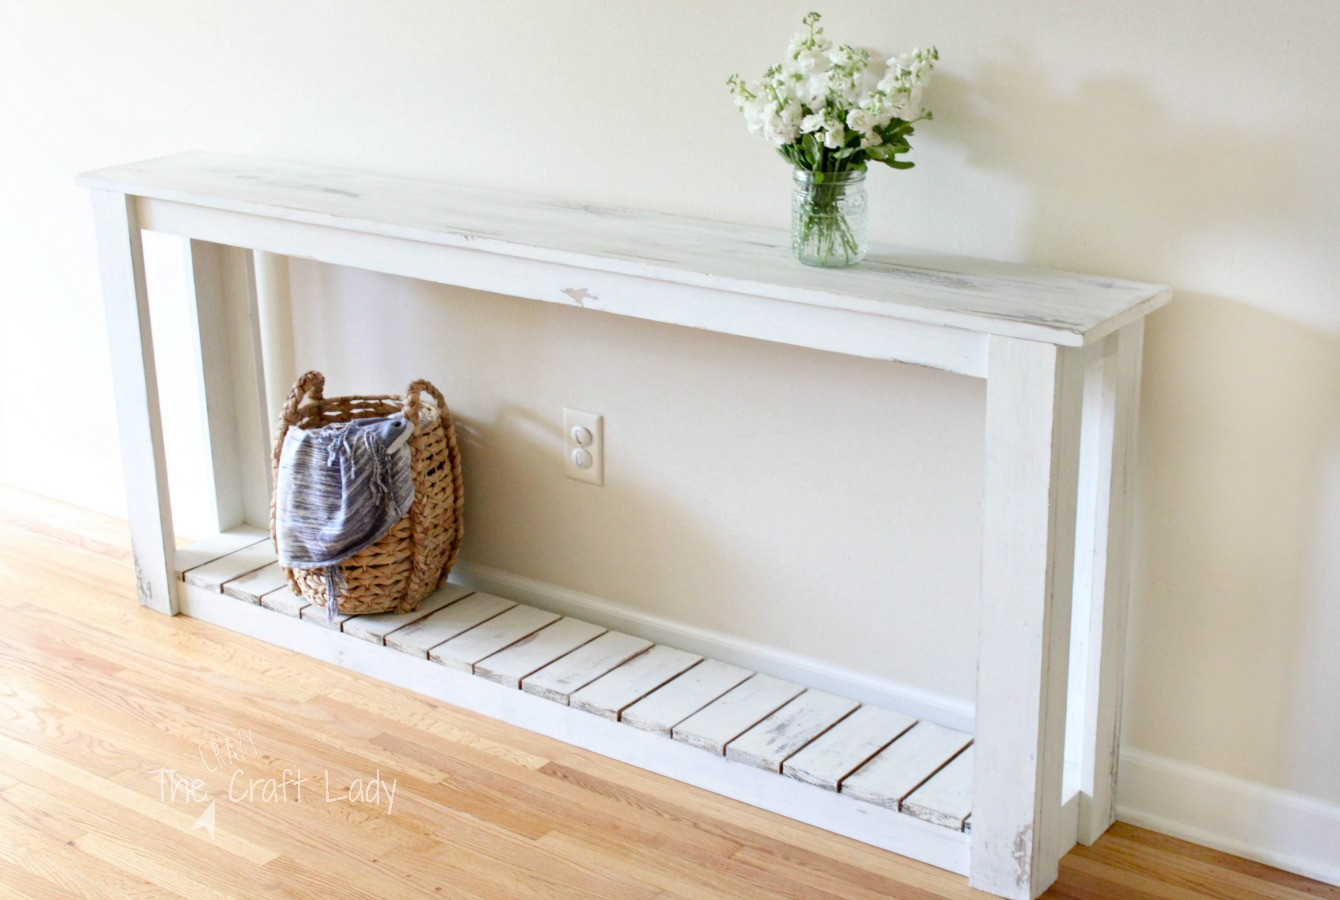 Best ideas about Couch Table DIY . Save or Pin DIY Sofa Table Farmhouse Style The Crazy Craft Lady Now.